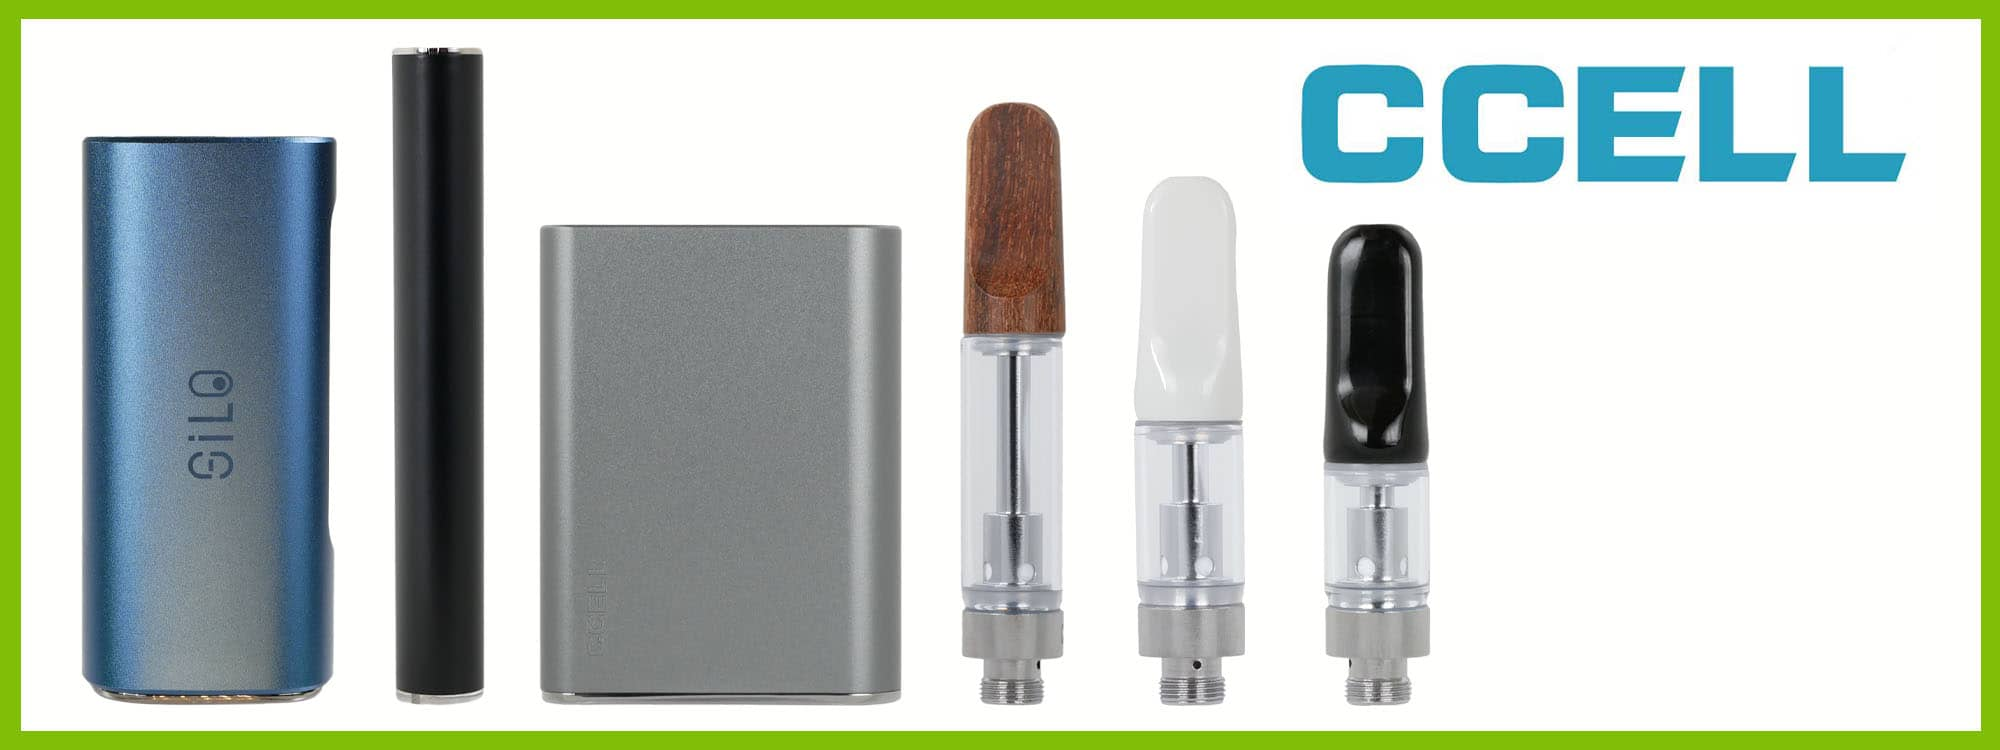 ccell vaporizer green friday sale